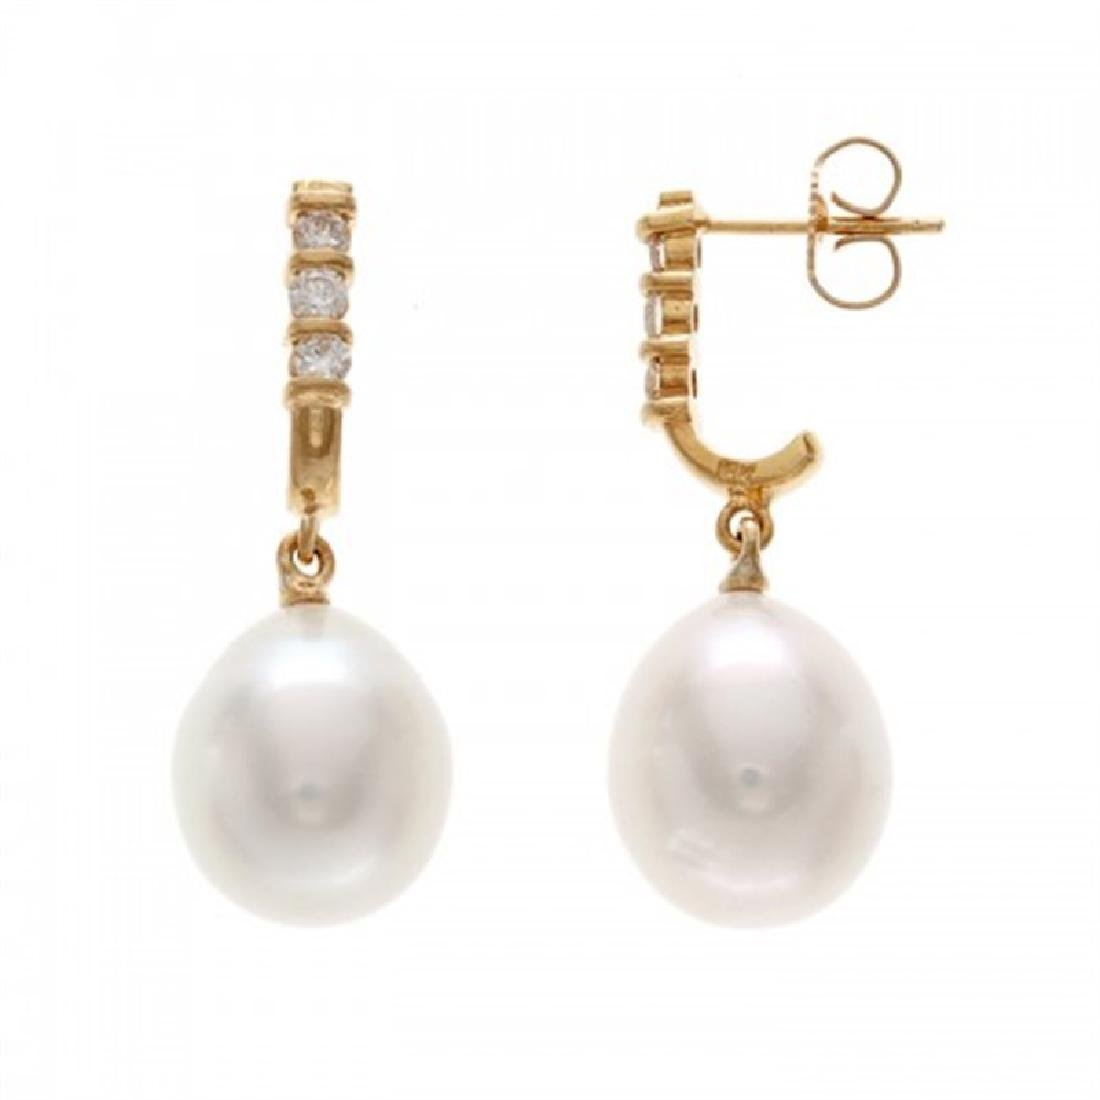 11.0-11.5mm South Sea Earrings with Diamonds